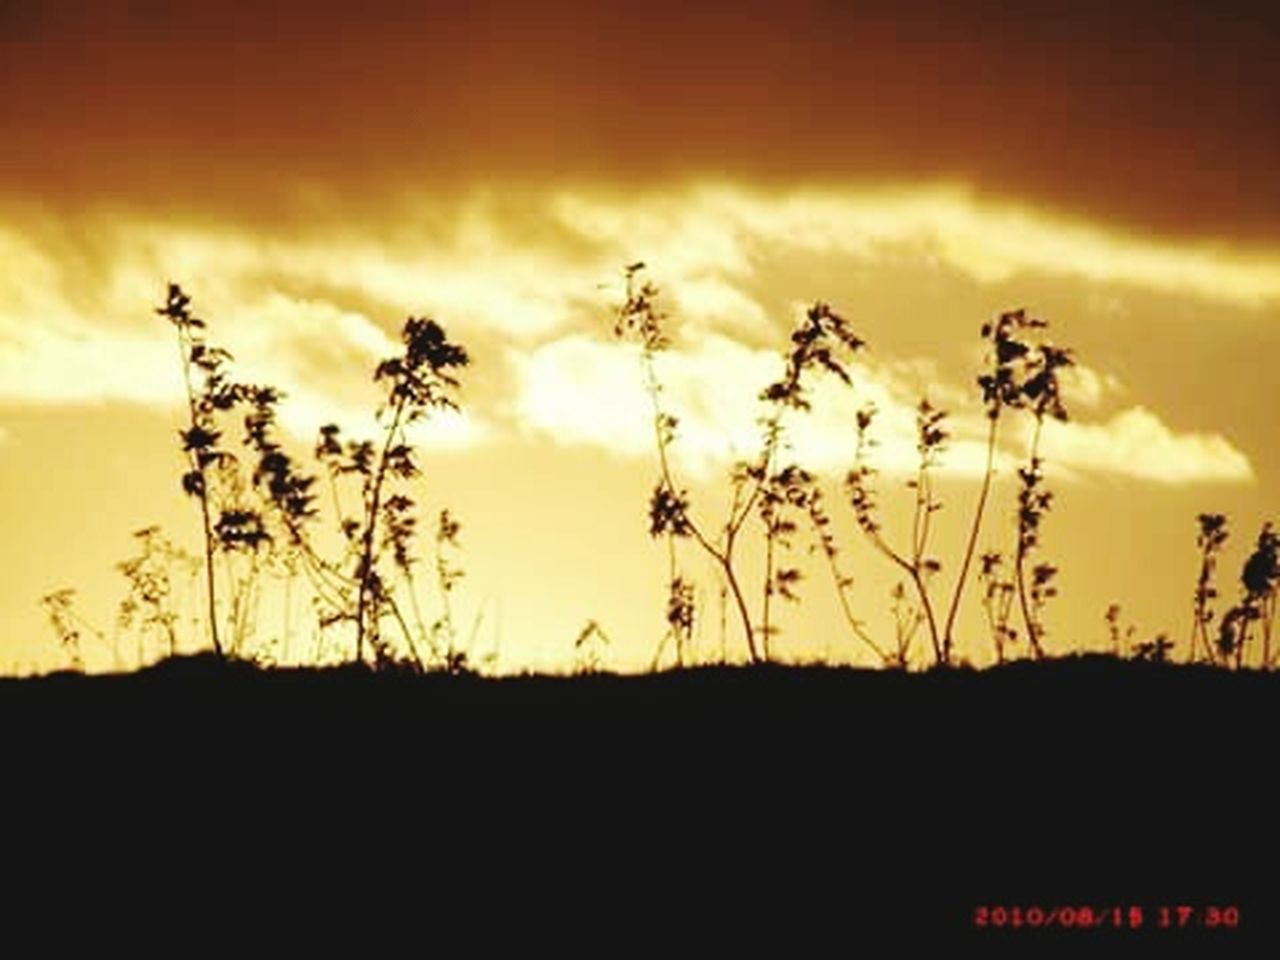 nature, silhouette, plant, sunset, cloud - sky, growth, no people, sky, landscape, outdoors, cereal plant, scenics, rural scene, grass, herbal medicine, beauty in nature, day, close-up